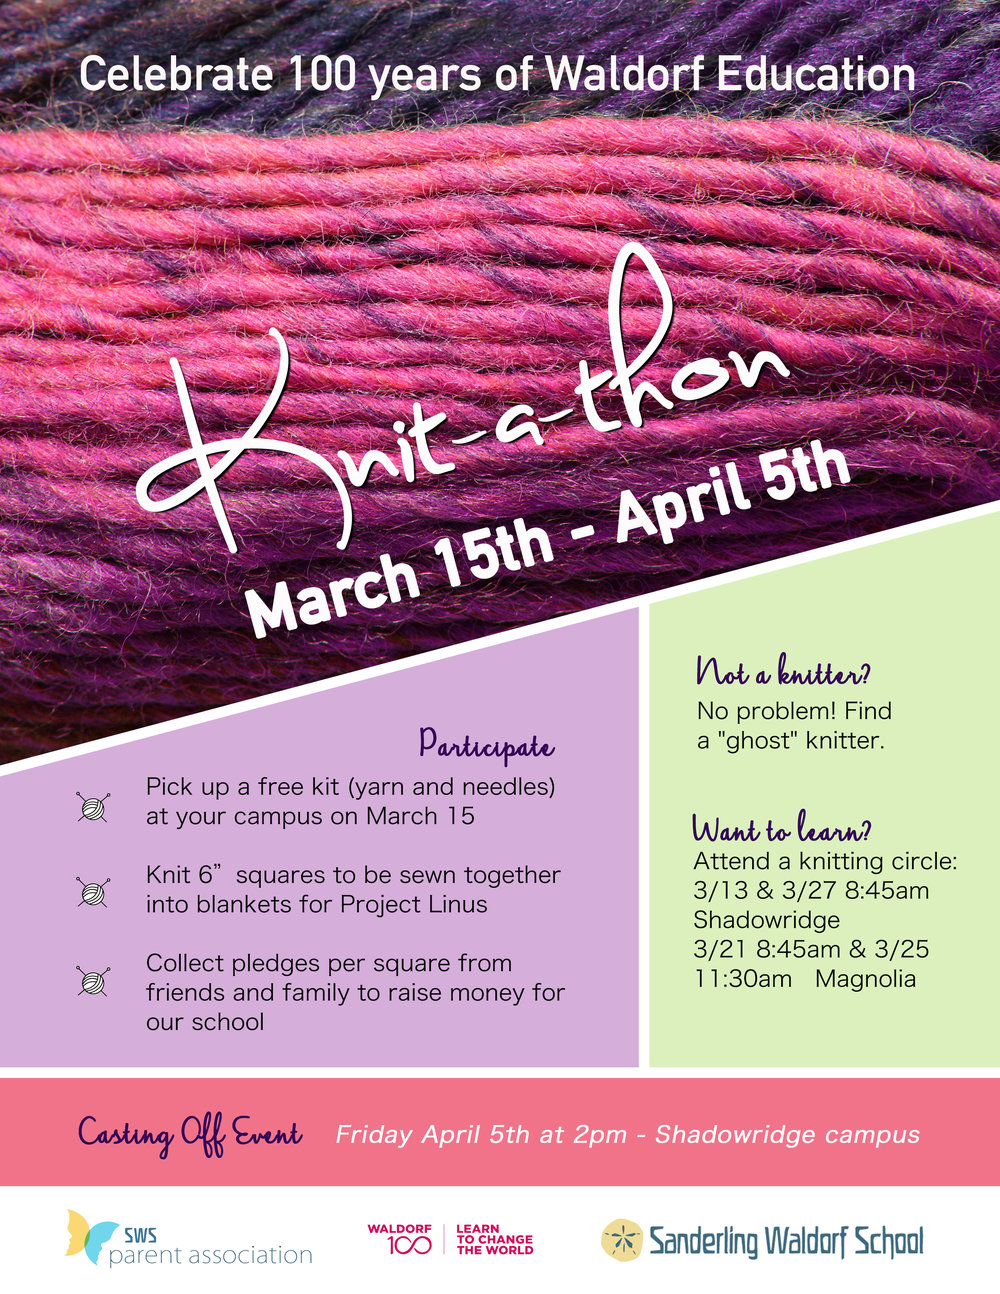 "Knit-a-thon - March 15 to April 5, 2019 to Celebrate 100 Years of Waldorf EducationPARTICIPATE- Pick up a free kit (yarn & needles) and Registration Form at either campus on March 15- Knit 6"" squares to be sewn together into blankets for Project Linus- Collect pledges per square from friends and family to raise money for Sanderling Waldorf SchoolNOT A KNITTER? No problem! Find a ""ghost"" knitter.WANT TO LEARN? Attend a knitting circle at one of our two campuses.CASTING OFF EVENT on Friday, April 15th at 2pm - Shadowridge CampusFor more information, visit the Knit-a-thon FAQ page here."